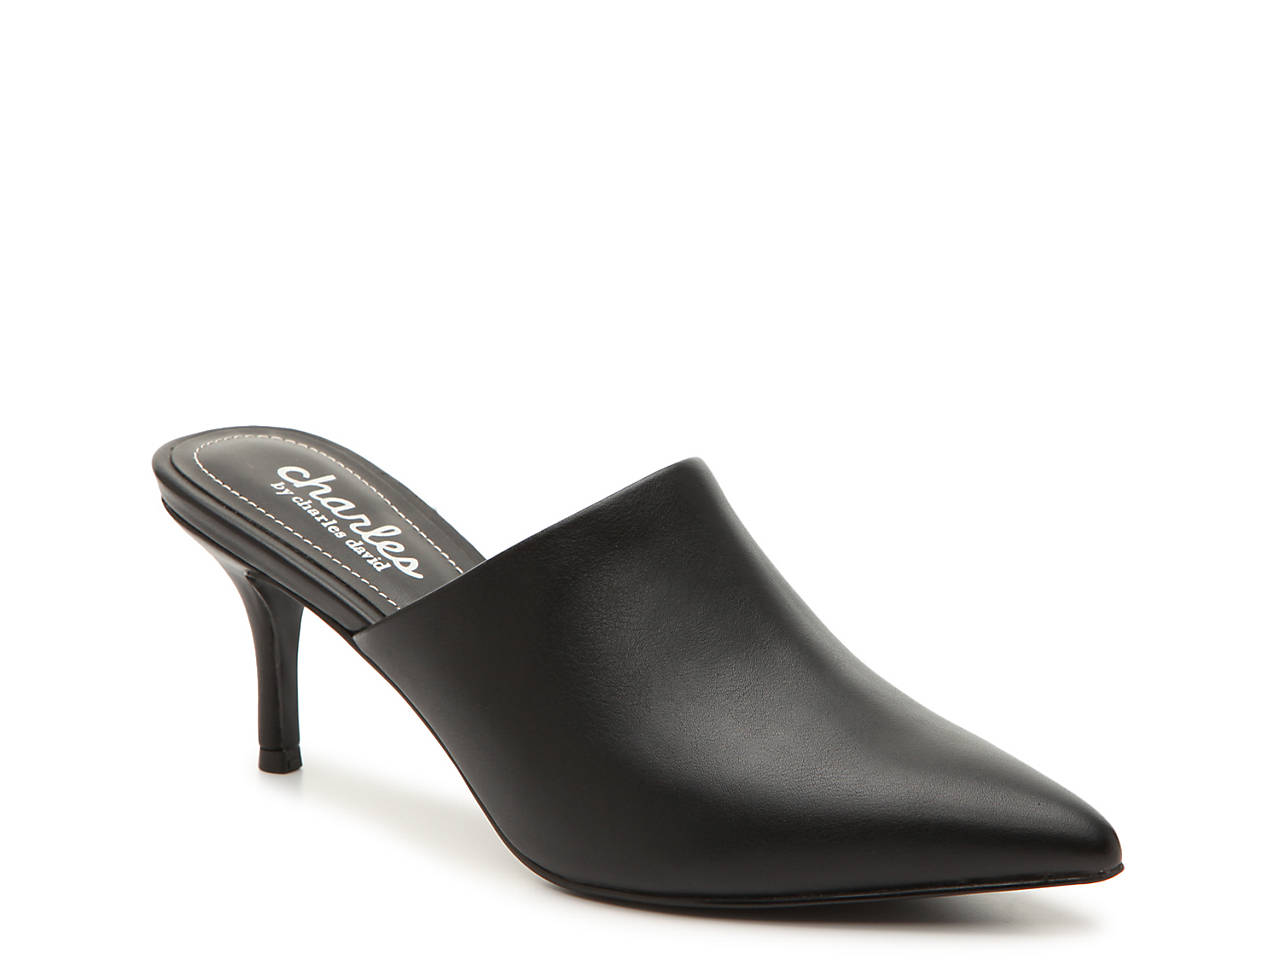 4e049f6d1704 Charles by Charles David Abree Mule Women s Shoes